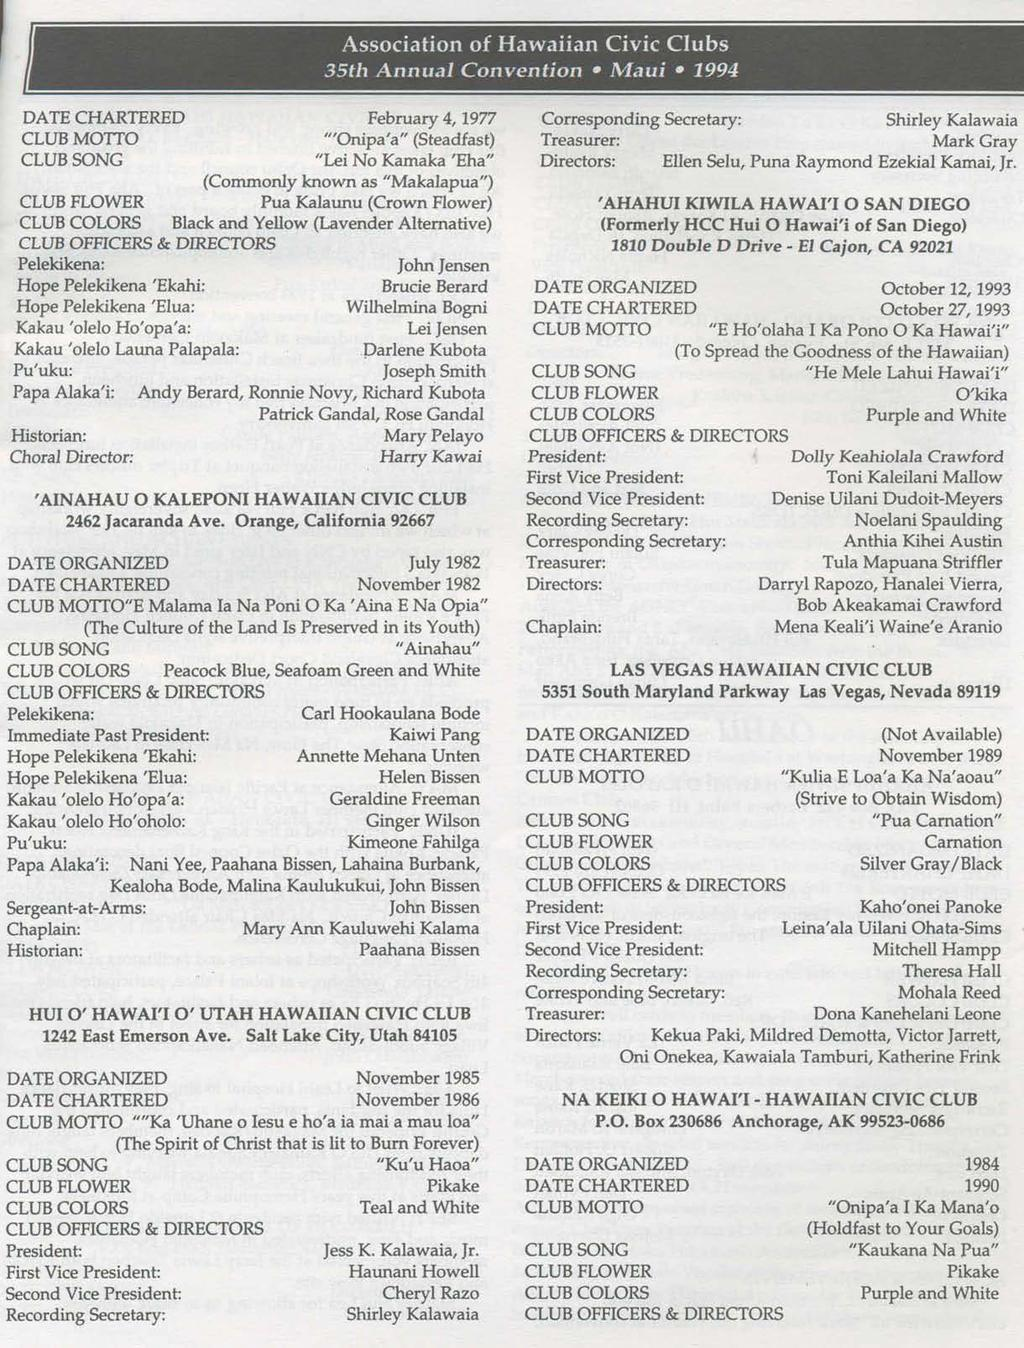 Association of Hawaiian Civic Clubs 35th Annual Convention Maui 1994 DATE CHARTERED CLUBMOlTO CLUBSONG CLUB COLORS CLUB OFFICERS & DIRECTORS Pelekikena: Hope Pelekikena 'Ekahi: Hope Pelekikena 'Elua: